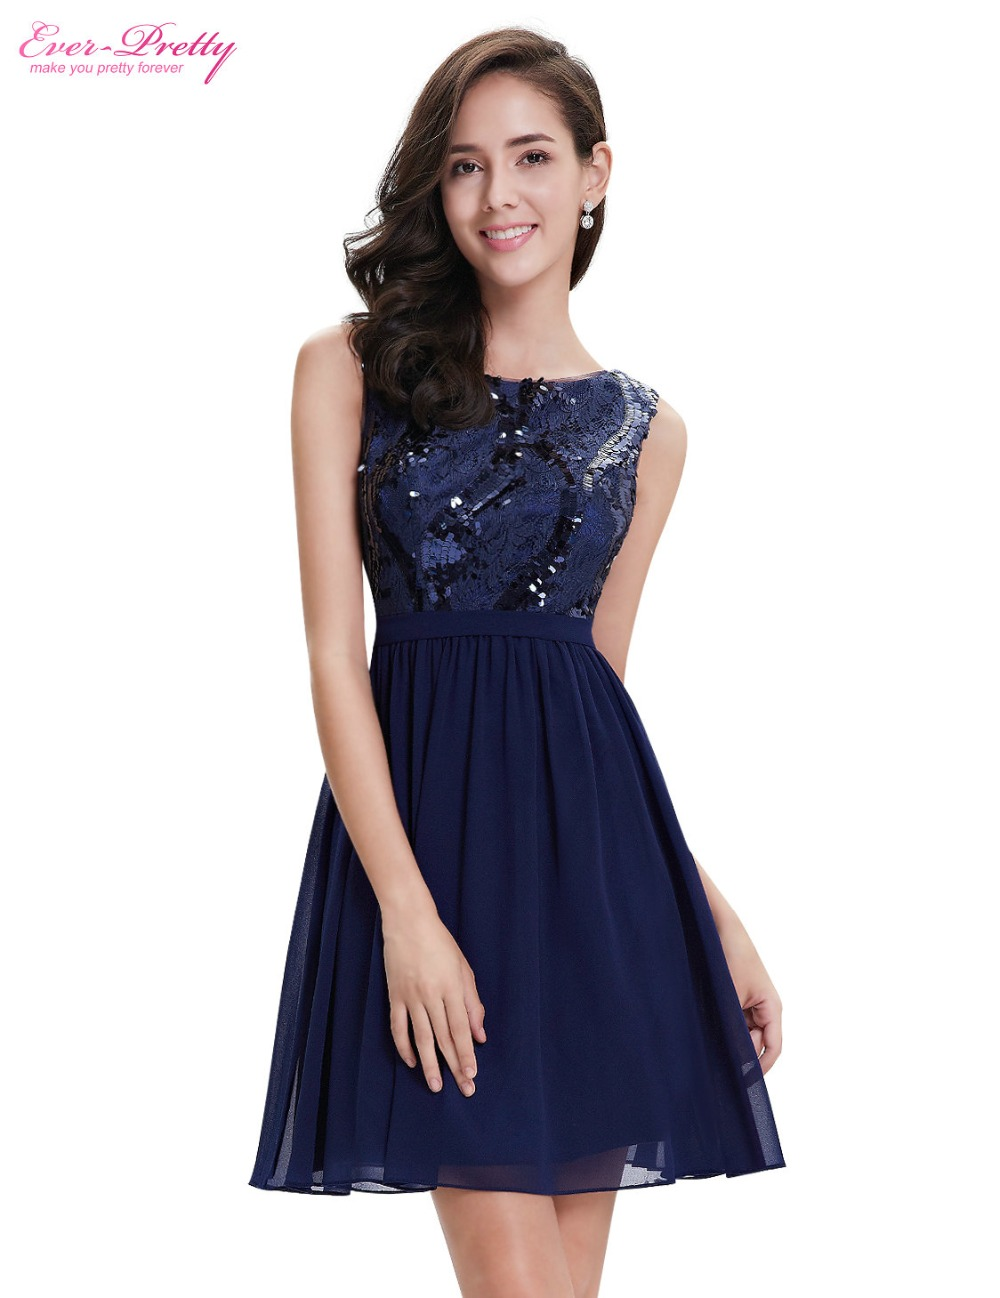 Aliexpress.com : Buy [Clearance Sale] Ever Pretty Cocktail Dress ...